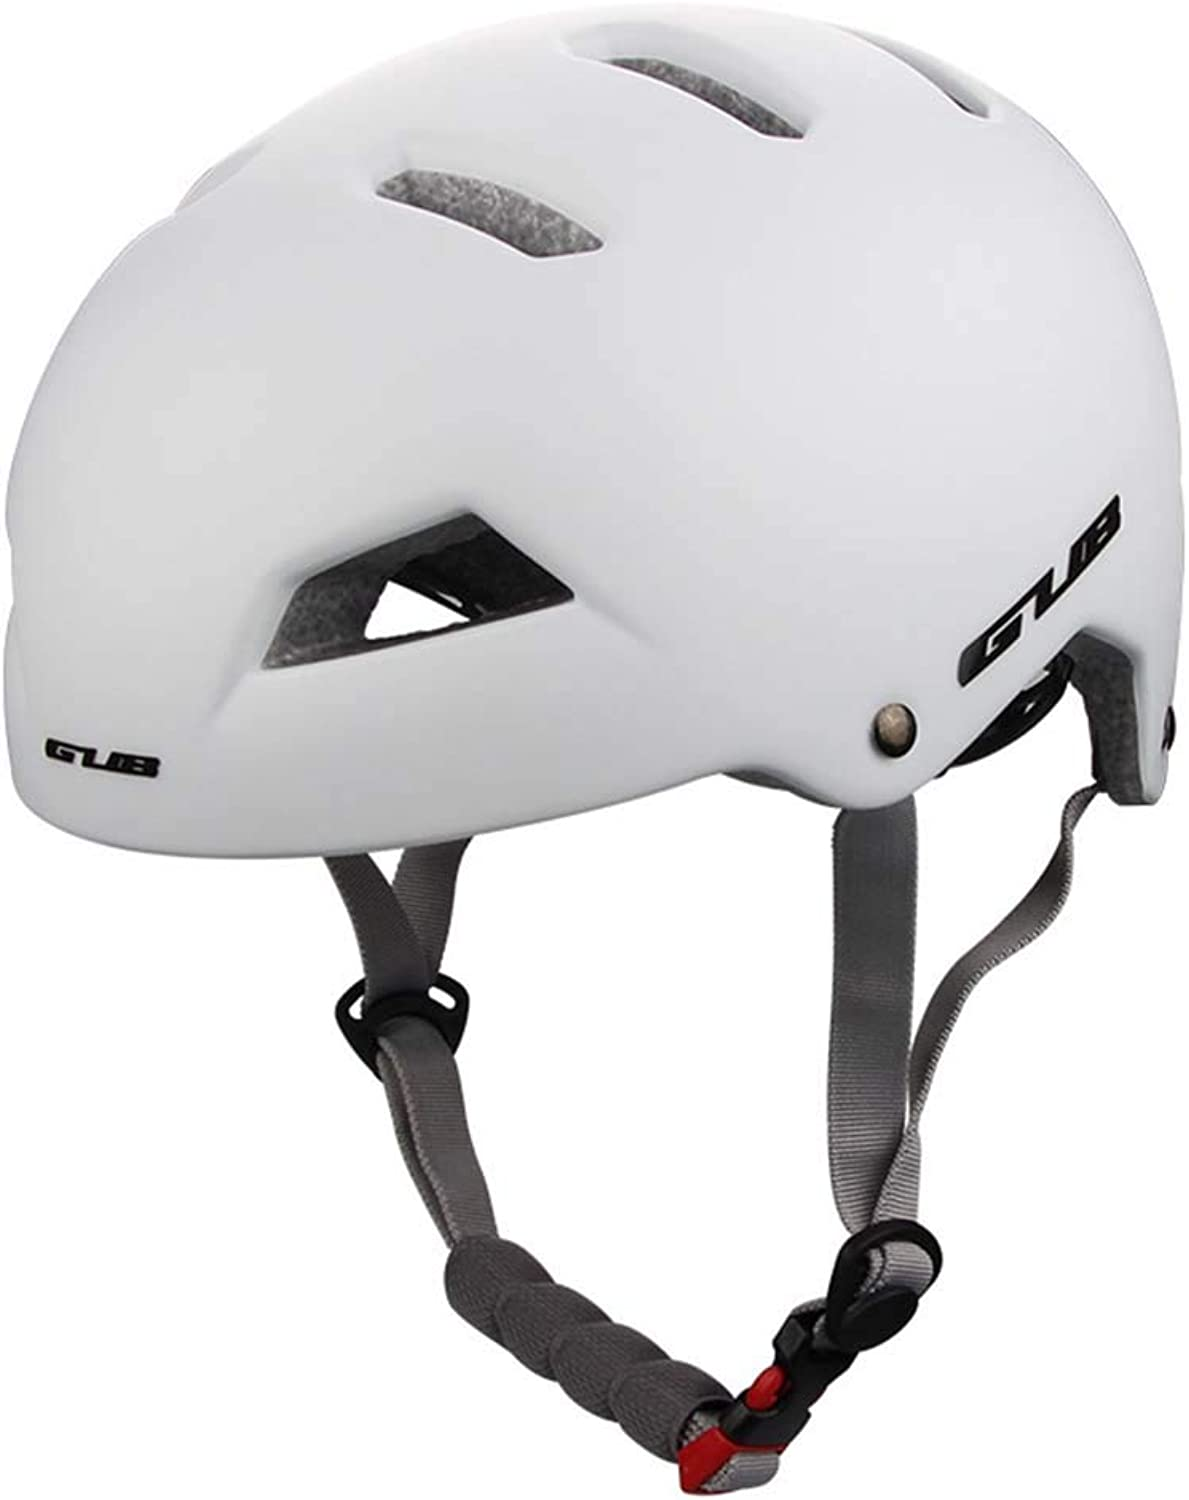 Safety Climbing Helmet,Motorcycle Safety Helmet Fit for Climbing Mountain Riding Bike and Rafting Skating for Sport